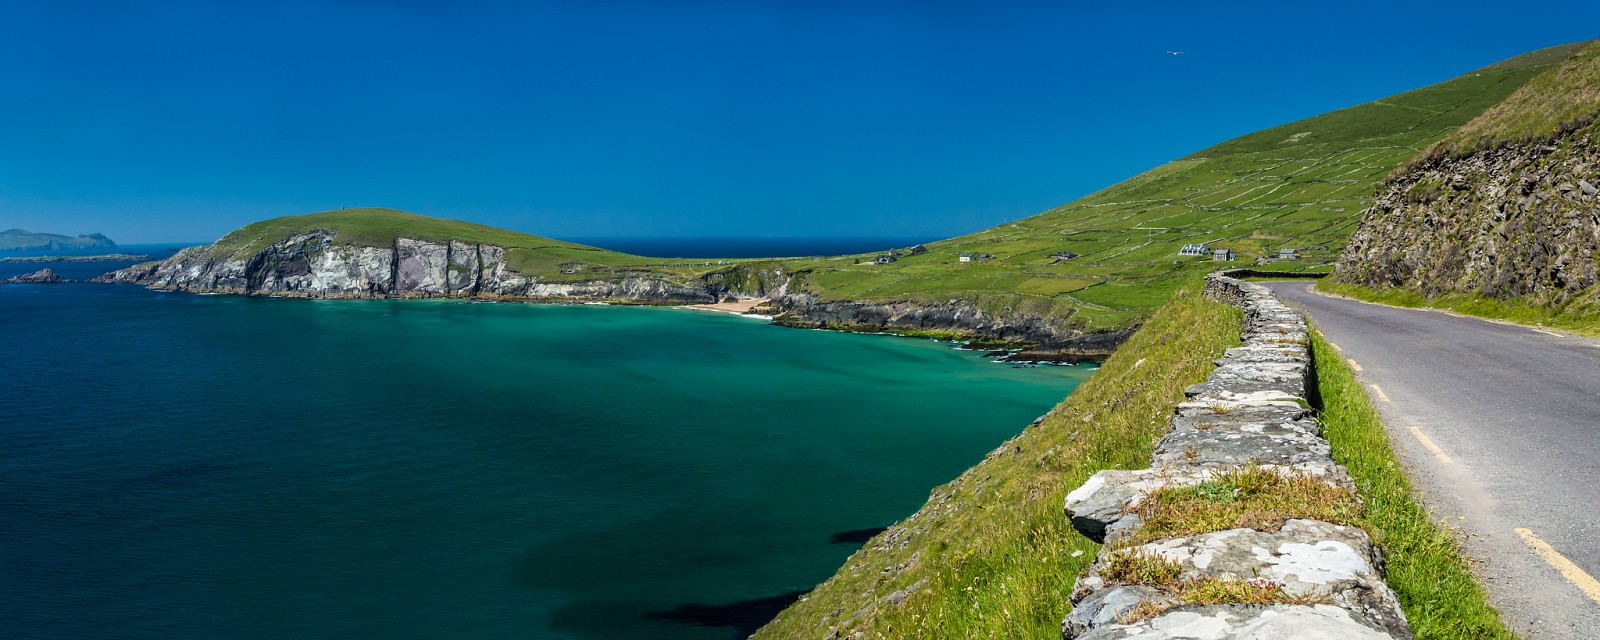 Slea Head Drive - Dingle